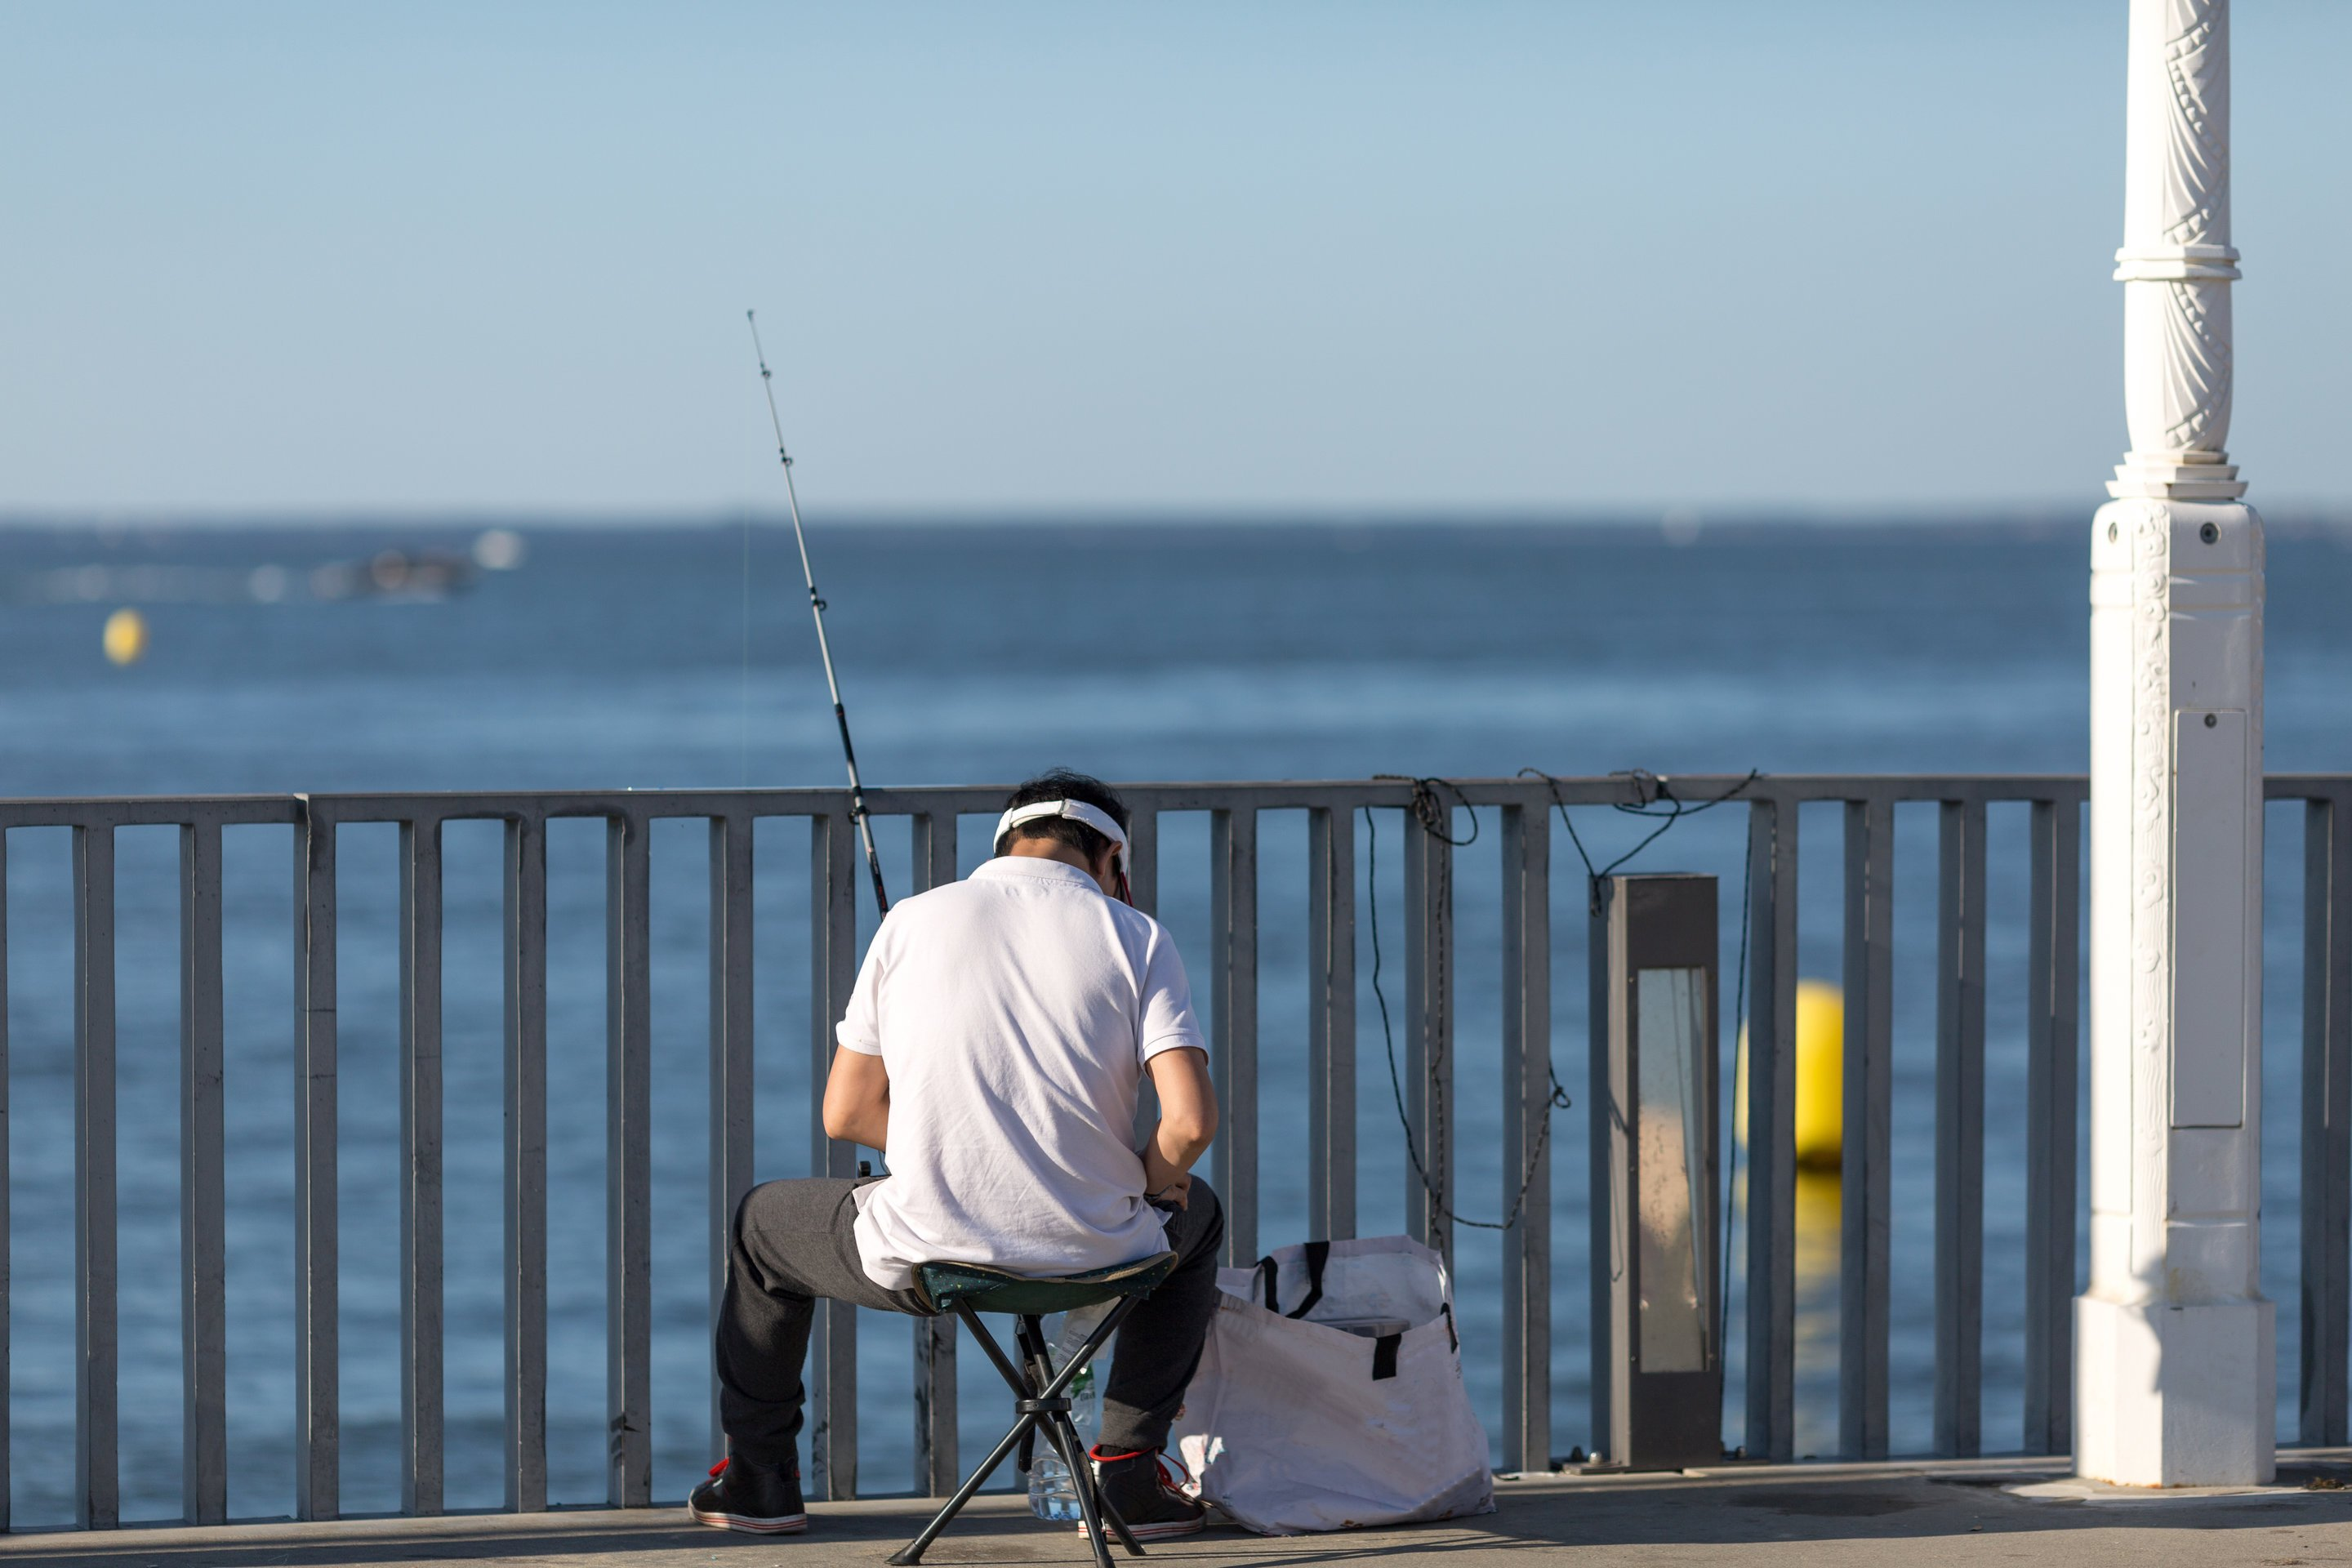 a pier angler adjusting his fishing gear